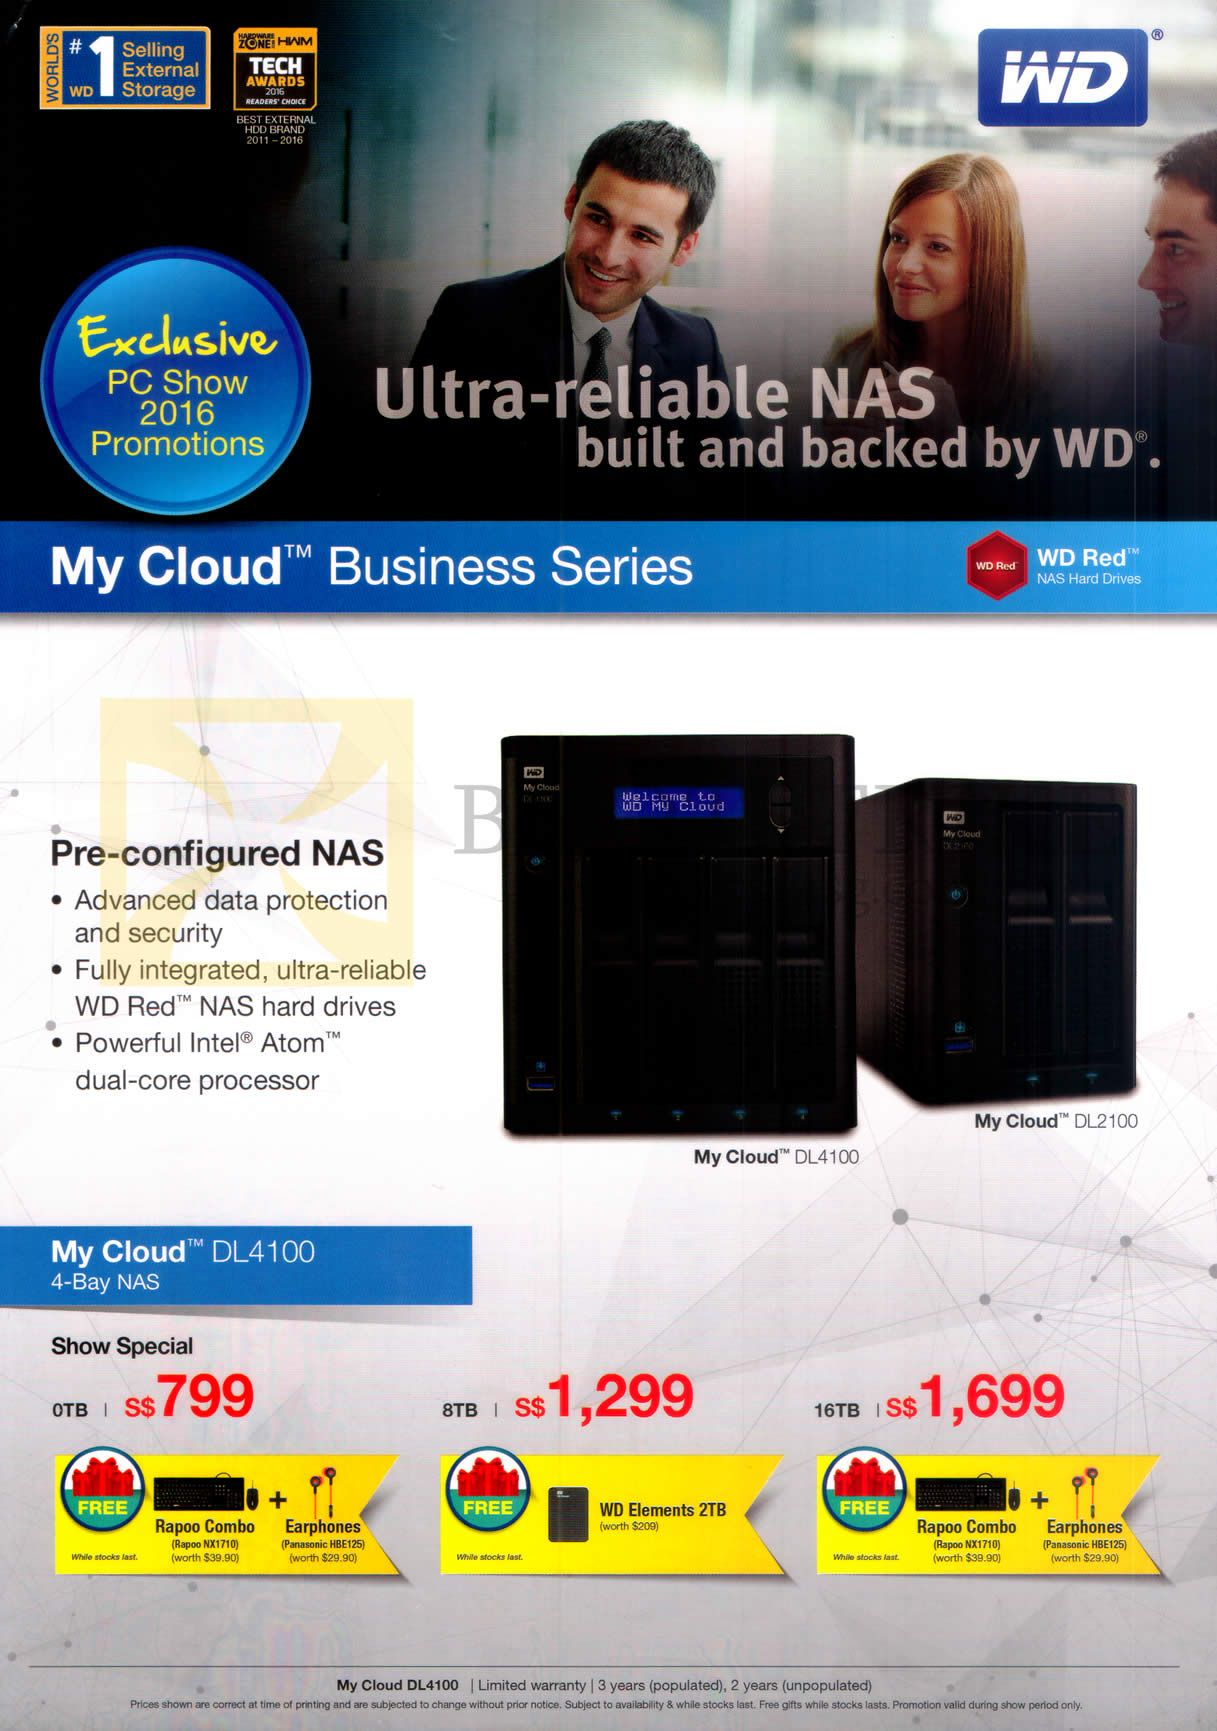 PC SHOW 2016 price list image brochure of Western Digital My Cloud NAS Business Series 0TB, 8TB, 16TB